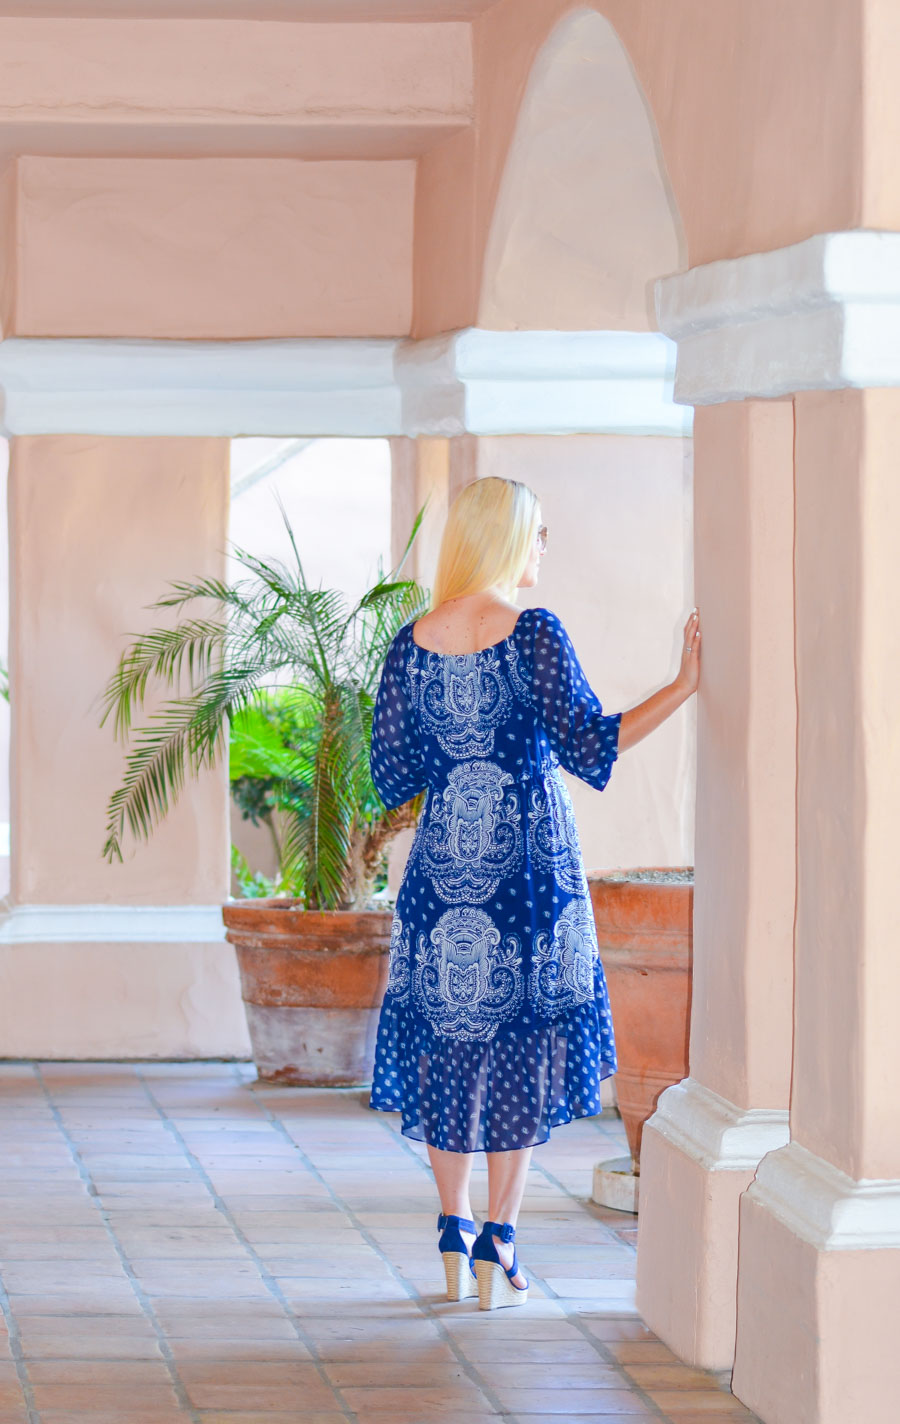 Blue Peasant a.n.a. Dress via JC Penney | Luci's Morsels :: LA Women's Fashion + Lifestyle Blogger